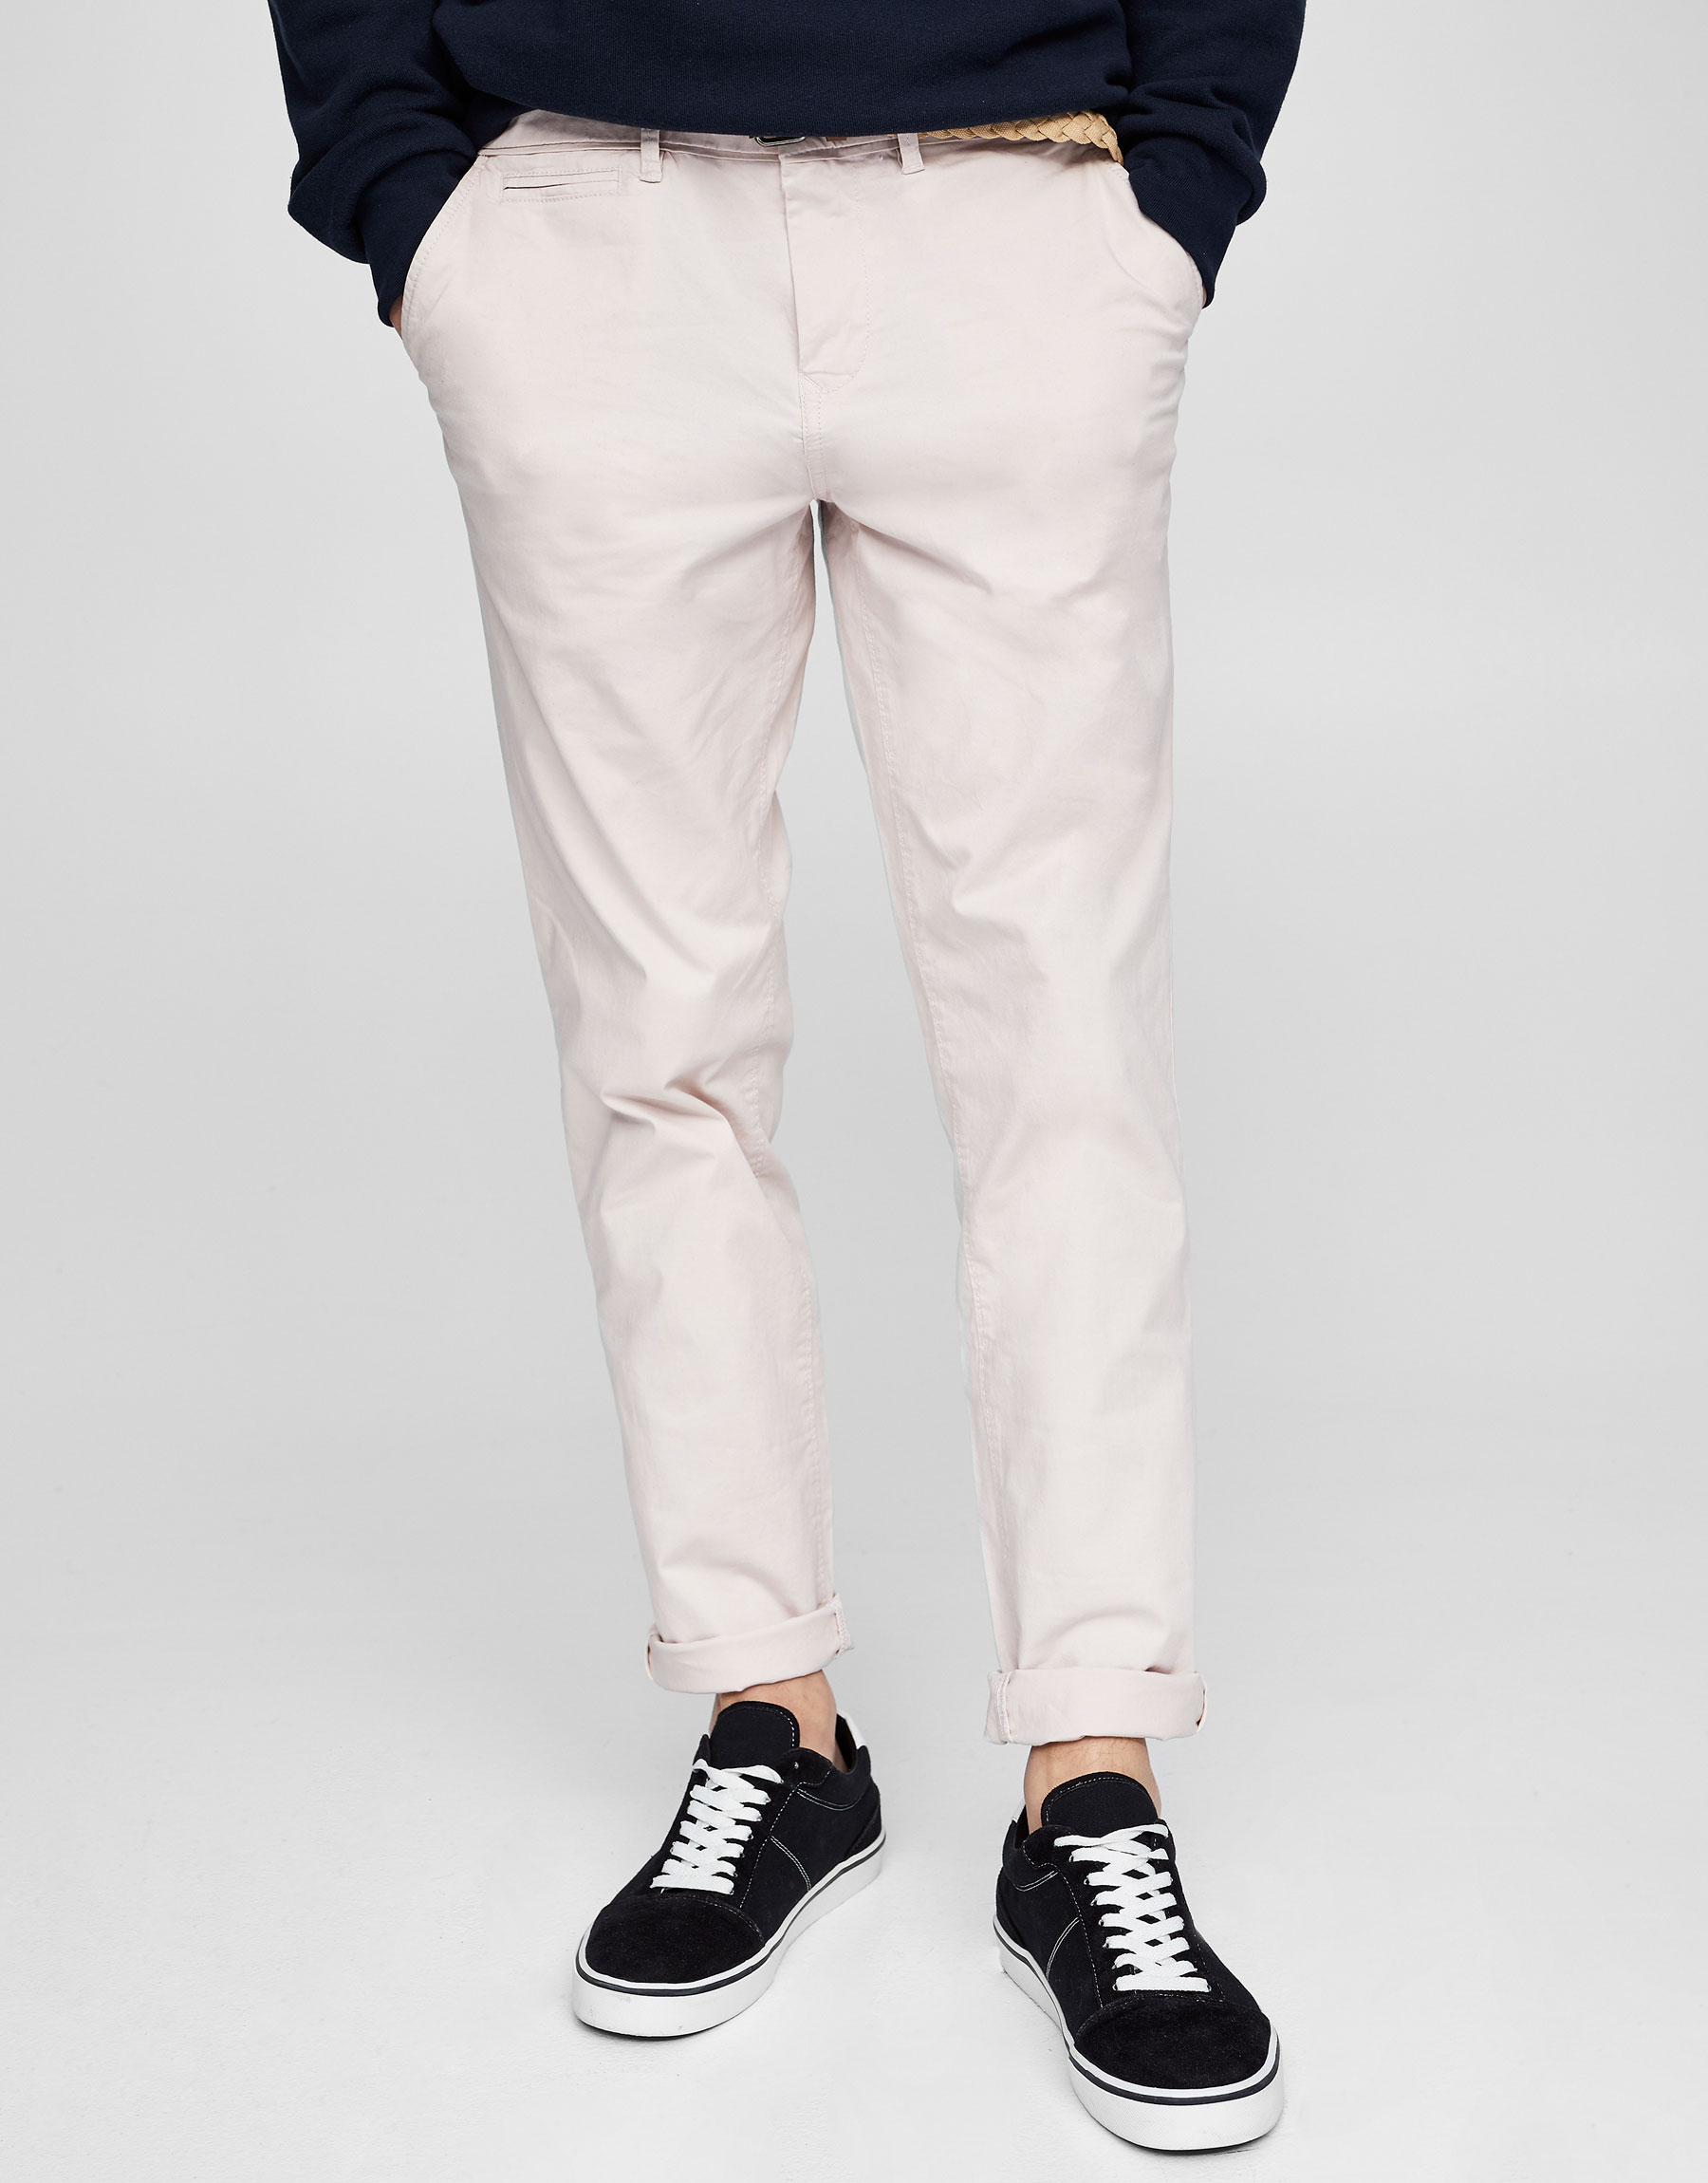 Chino-style comfort trousers with belt